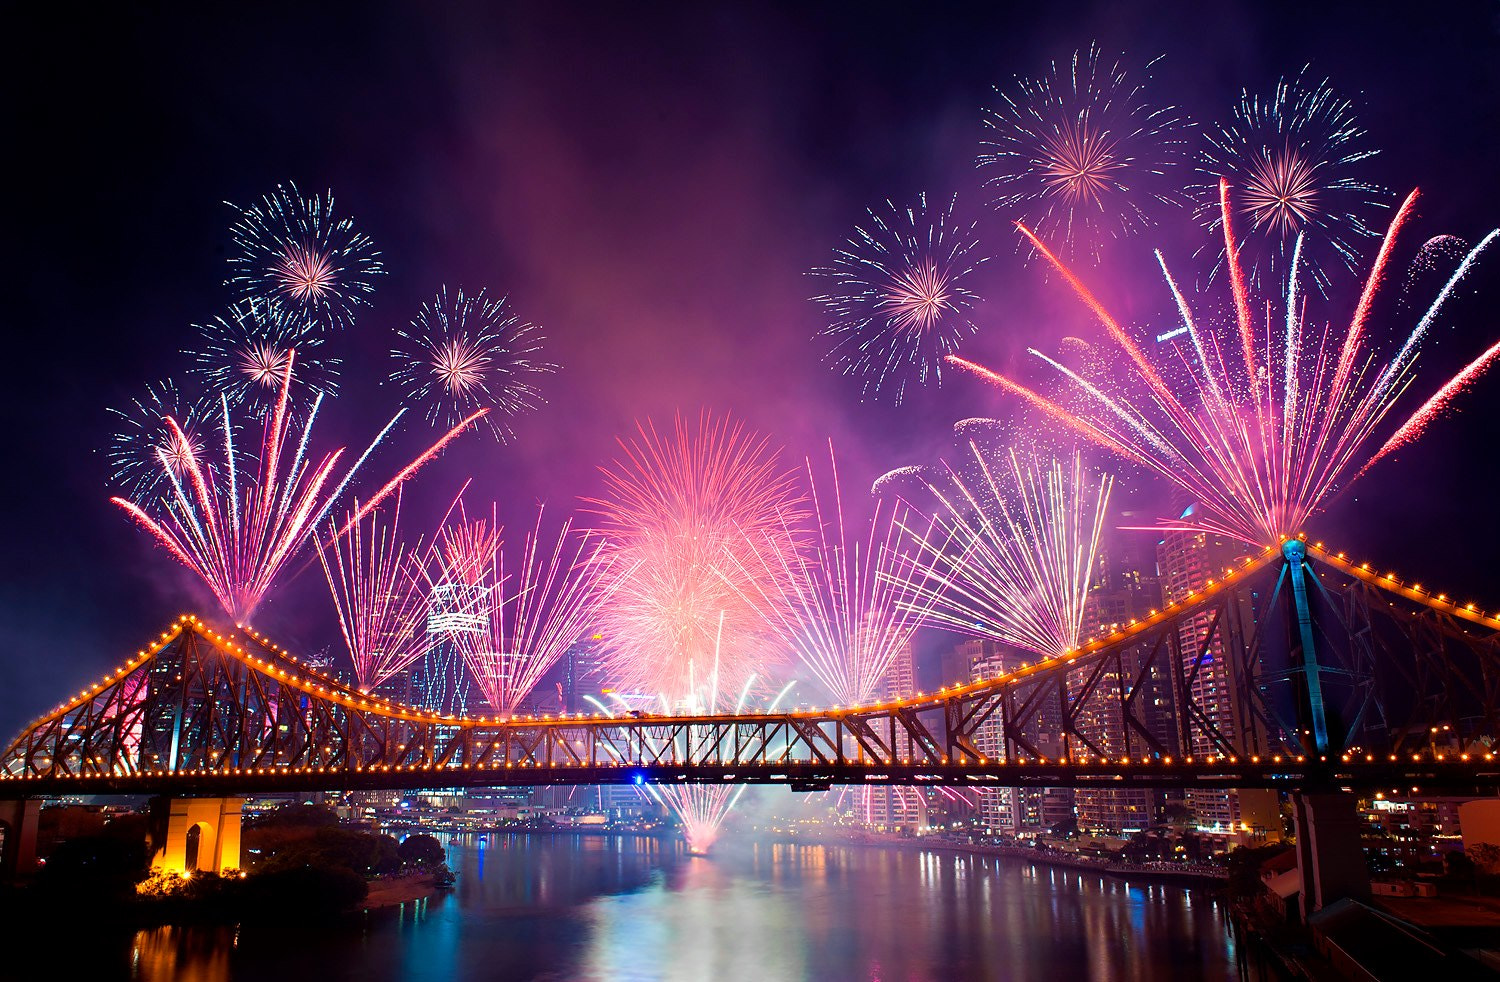 Photograph The fireworks by Jet Uarpanyaporn on 500px